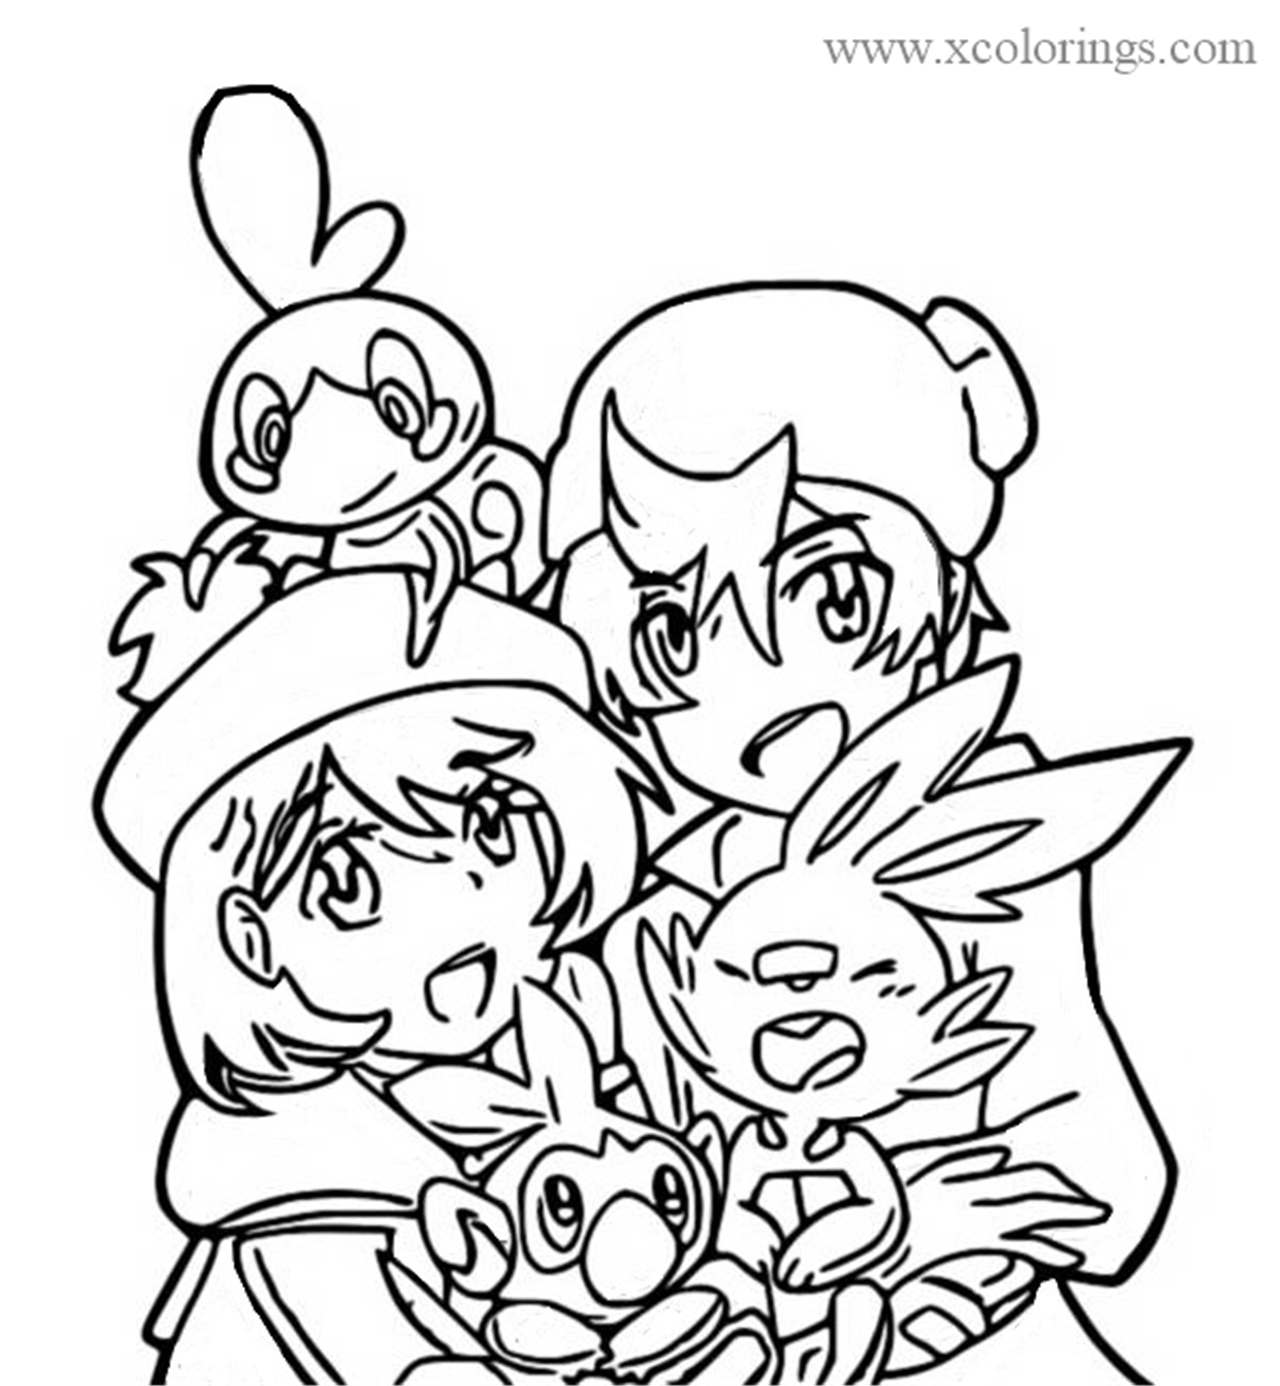 Trainers And Scobble Scorbunny And Grookey From Pokemon Sword And Shield Coloring Pages Xcolorings Com